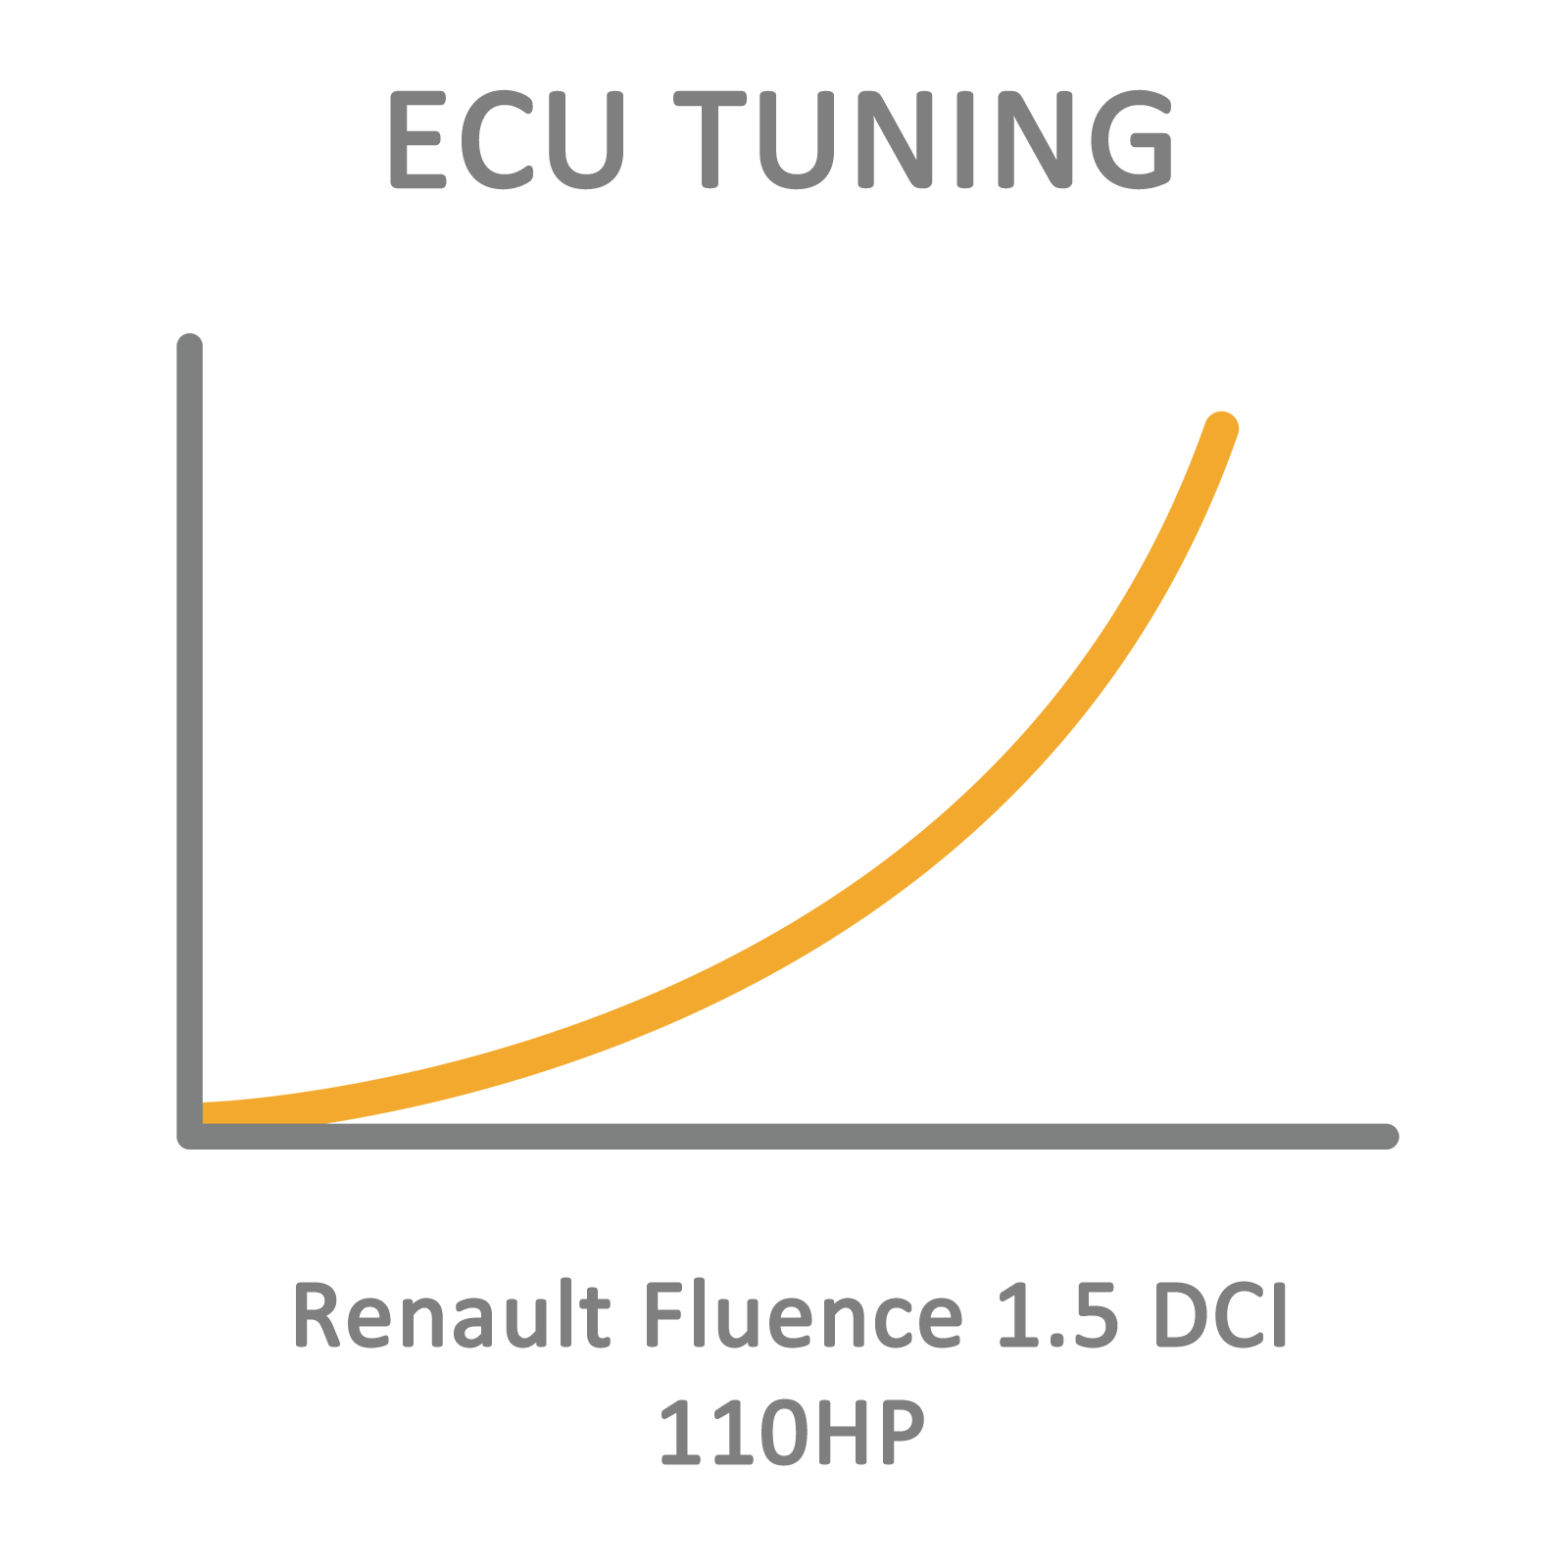 Renault Fluence 1.5 DCI 110HP ECU Tuning Remapping Programming